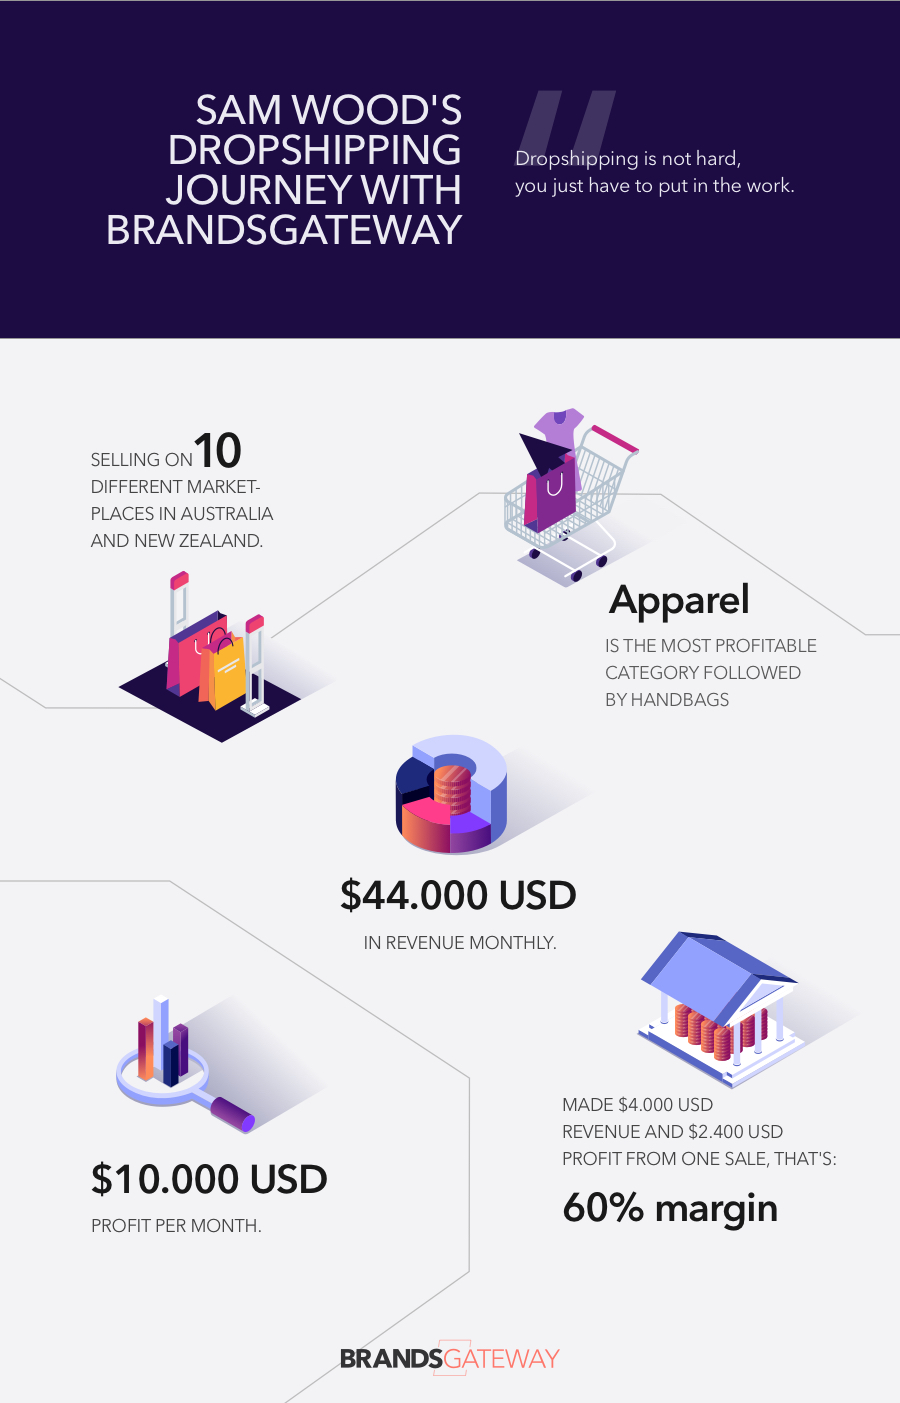 The dropshipping journey with BrandsGateway